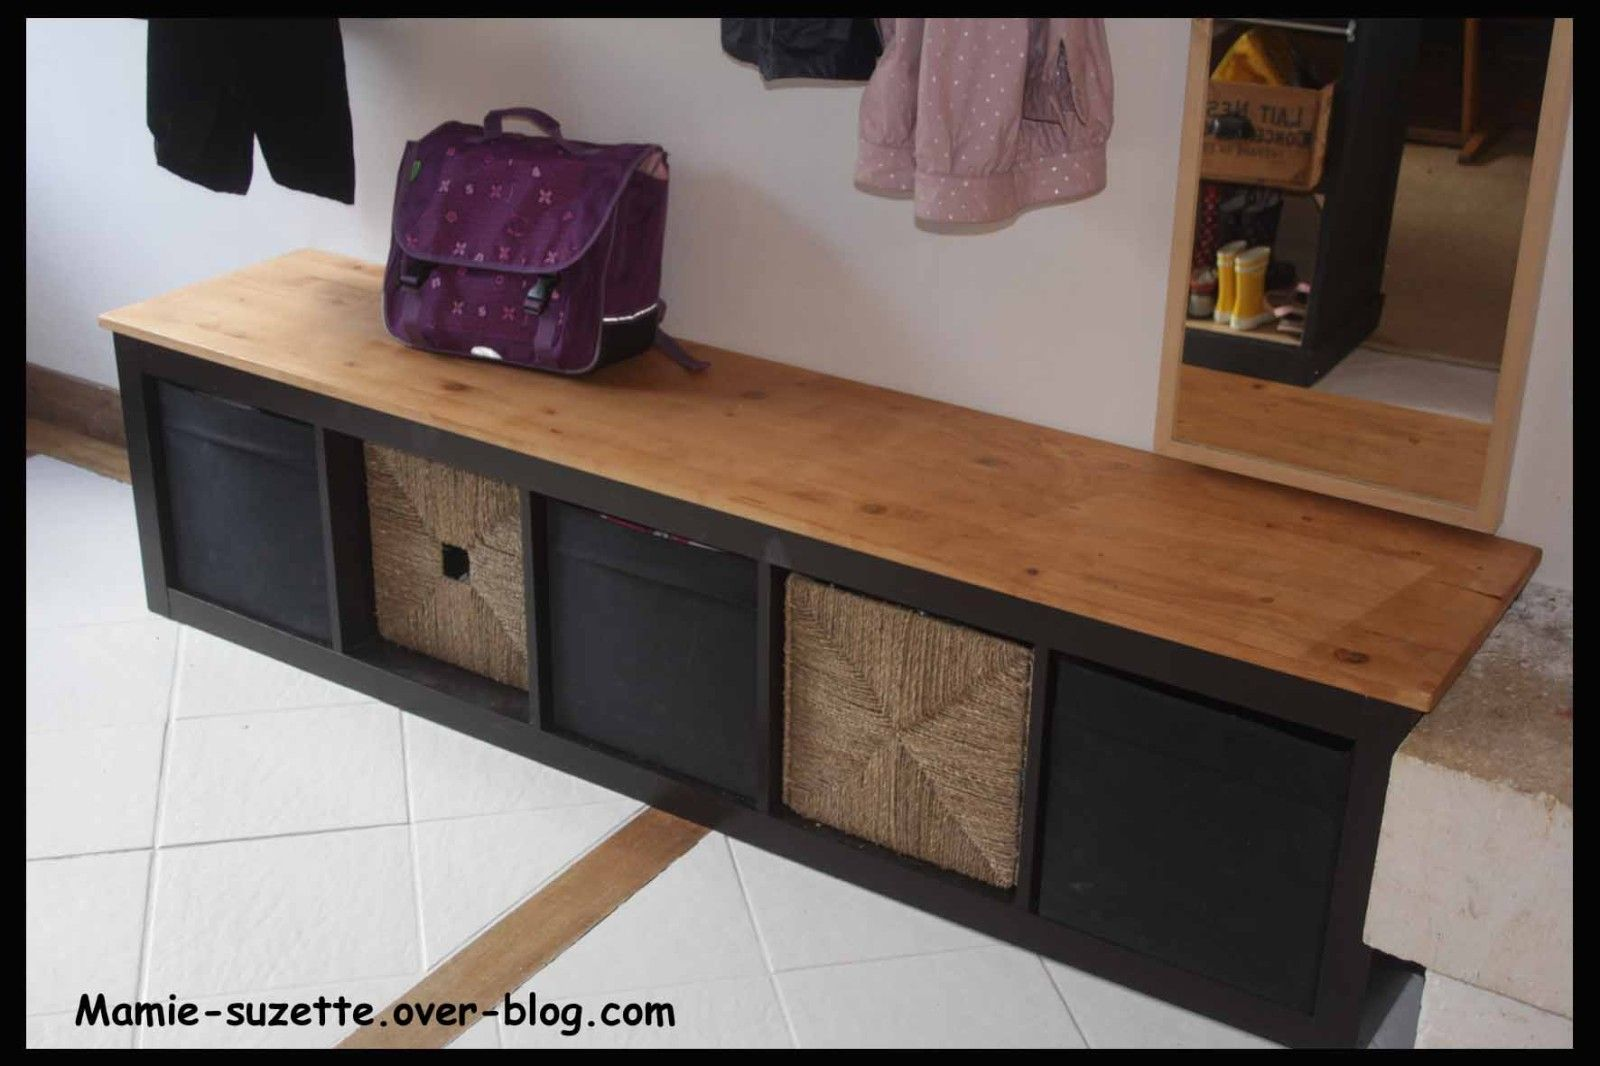 Amenagement De L Entree Le Blog De Mamie Suzette Over Blog Com Meuble Entree Ikea Meubles Ikea Meuble Entree